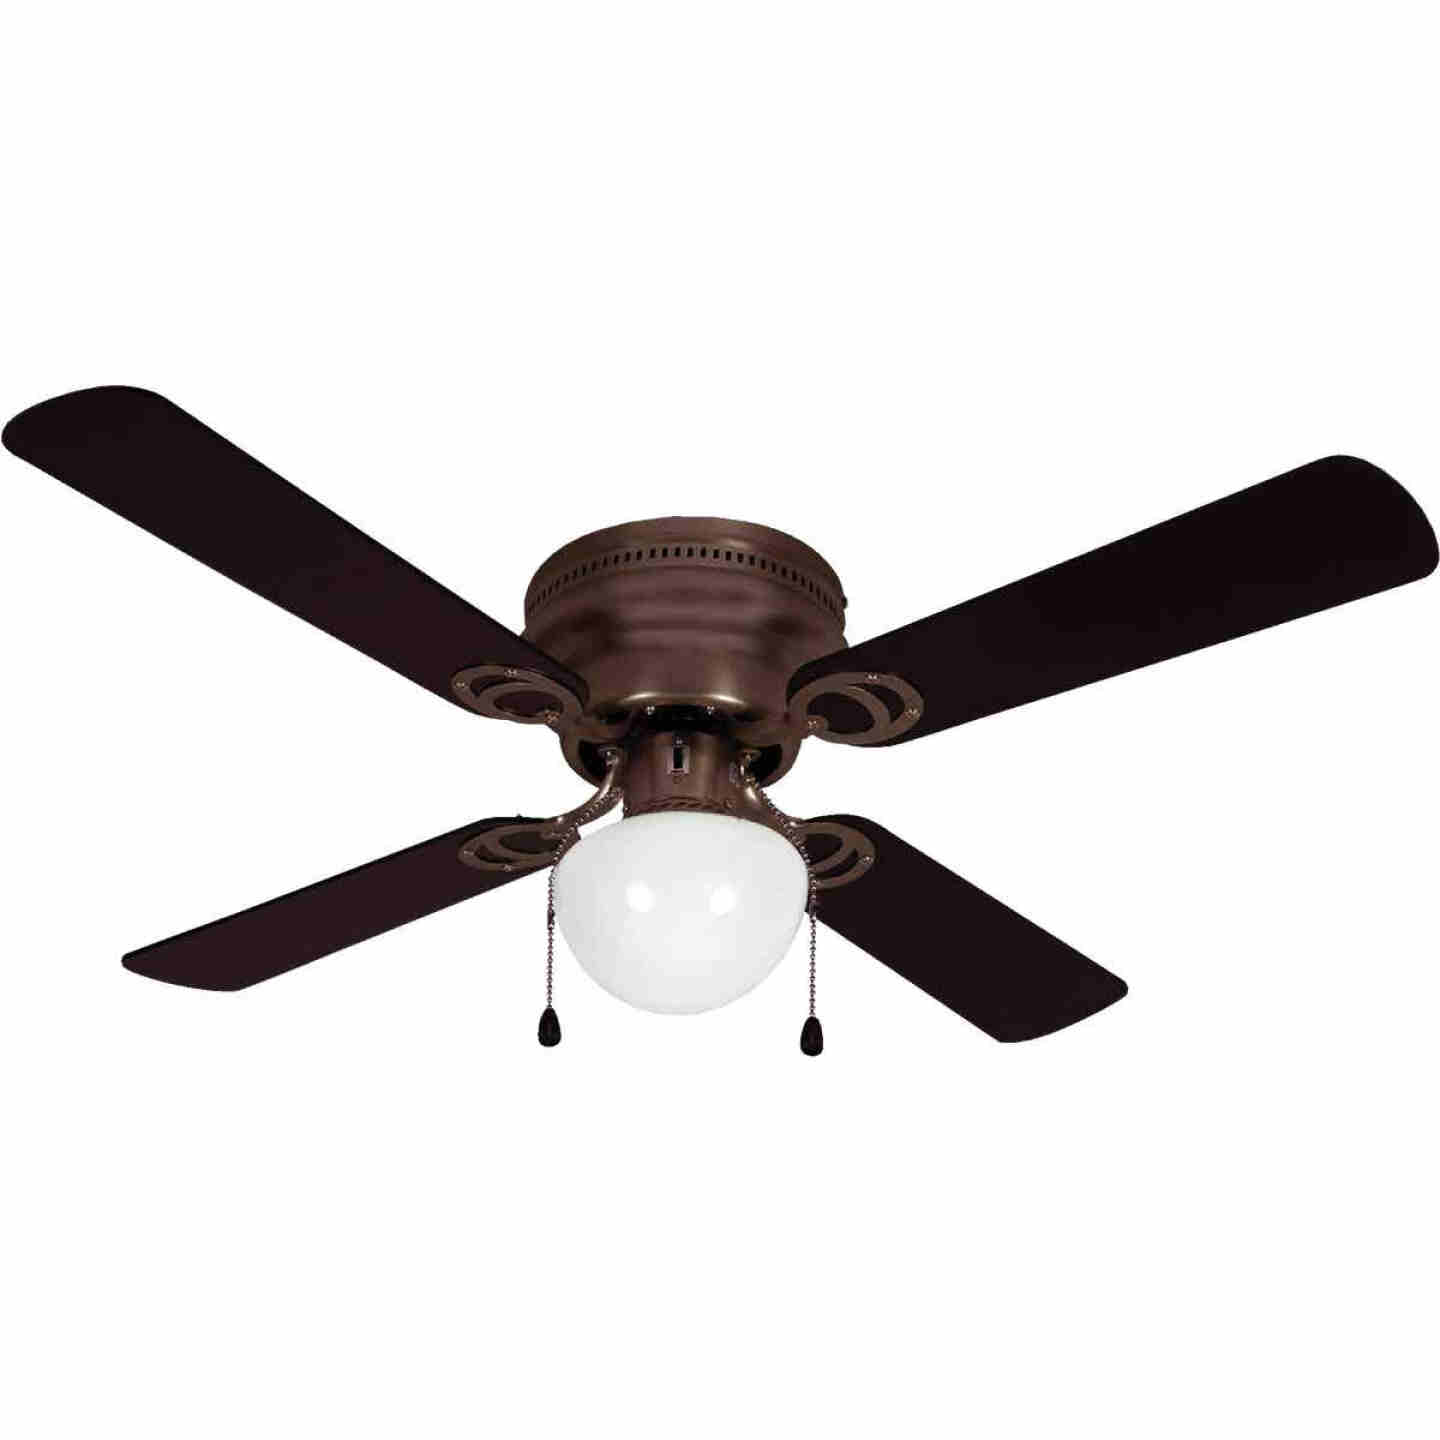 Home Impressions Neptune 42 In. Oil Rubbed Bronze Ceiling Fan with Light Kit Image 1